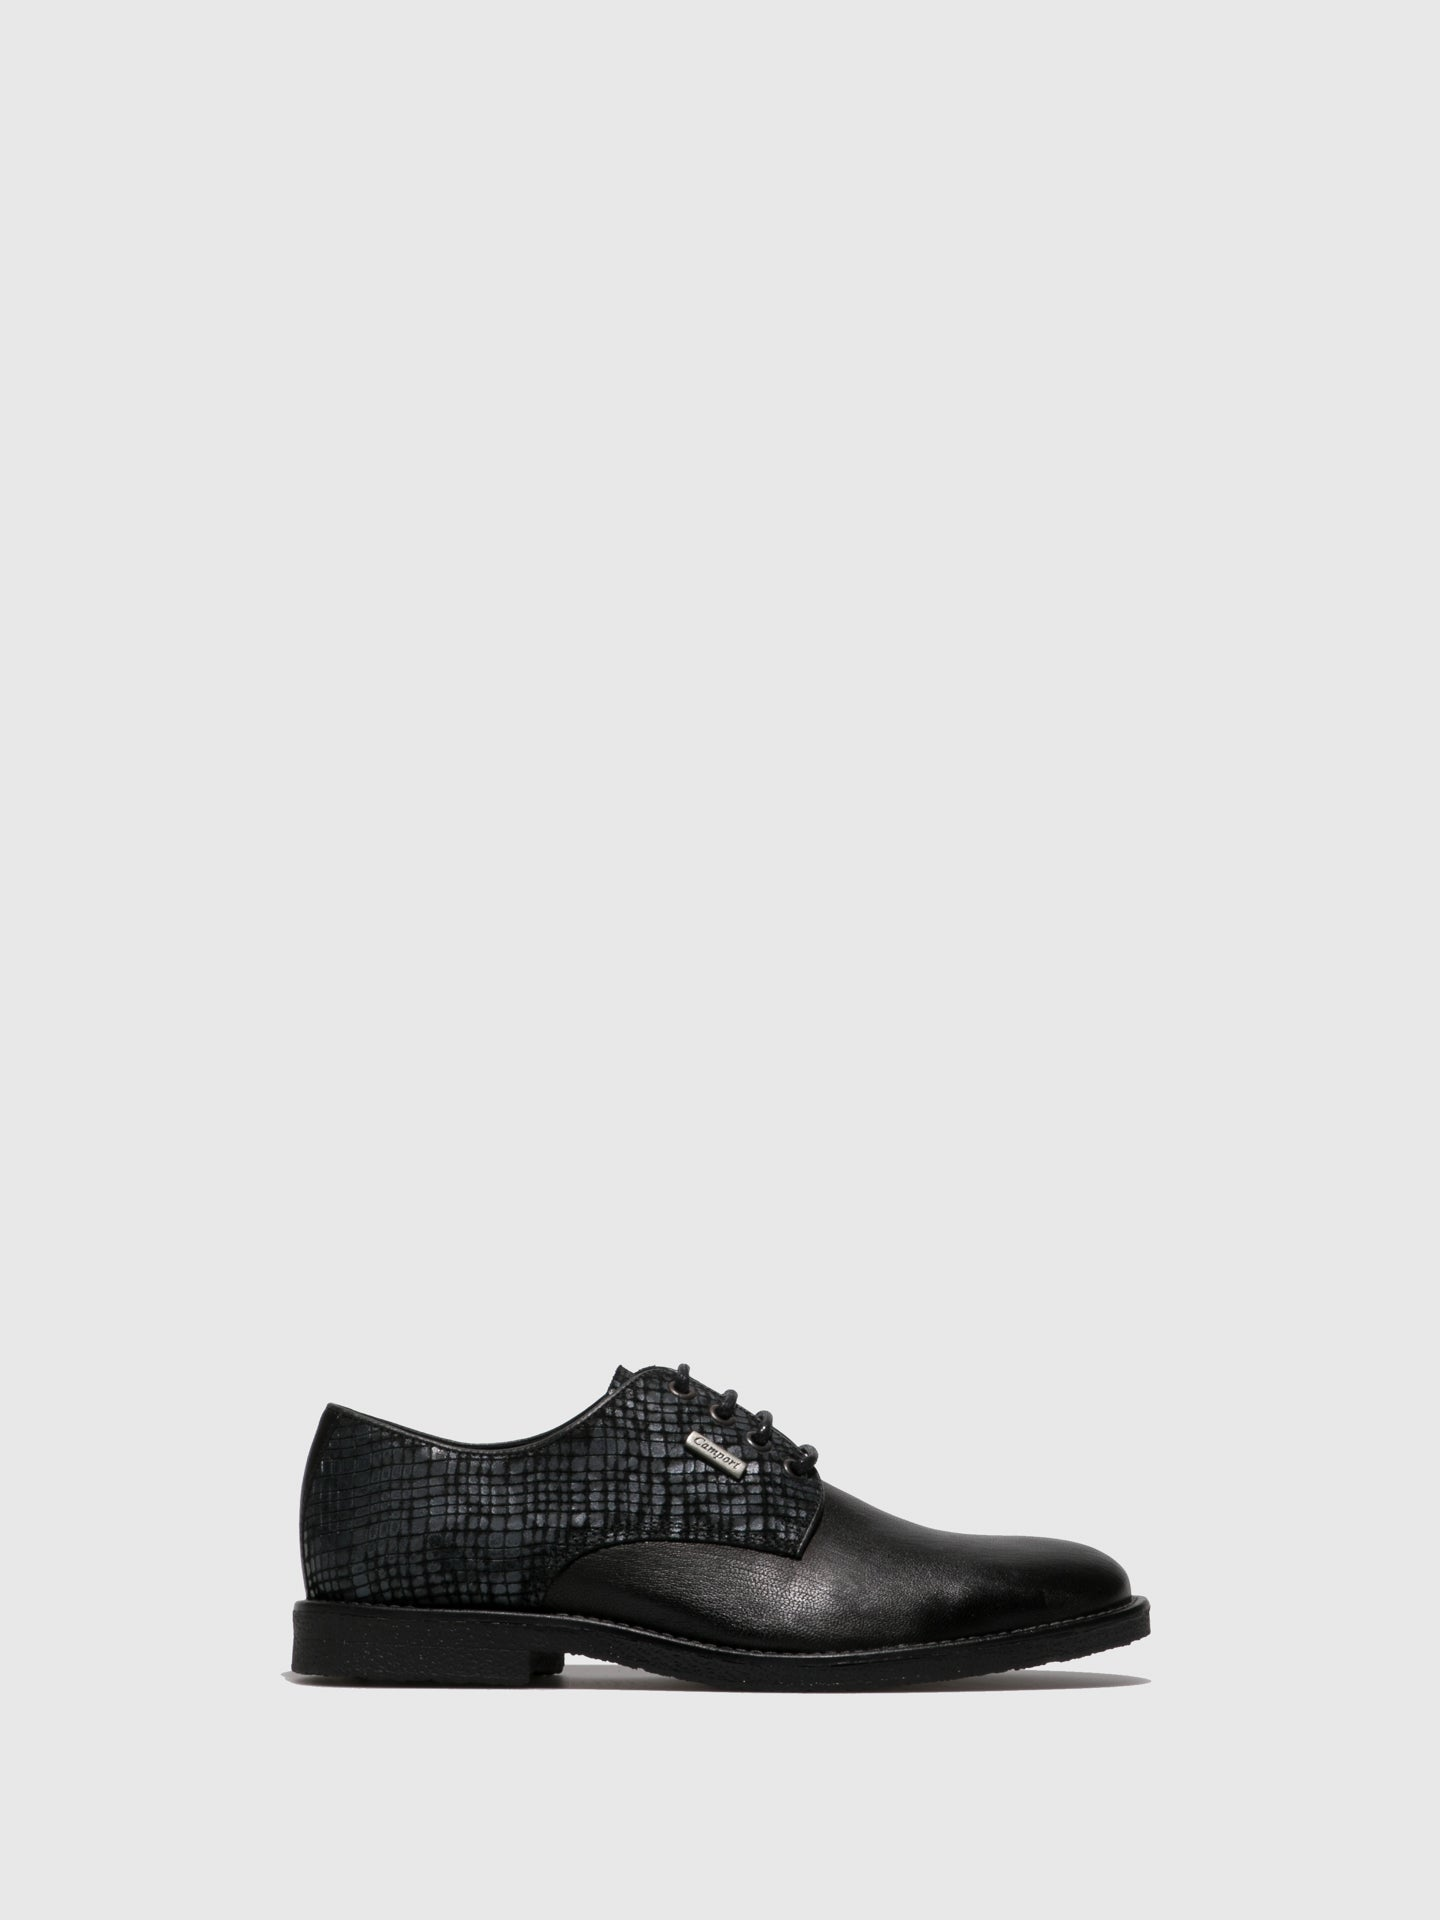 Camport Black Lace-up Shoes